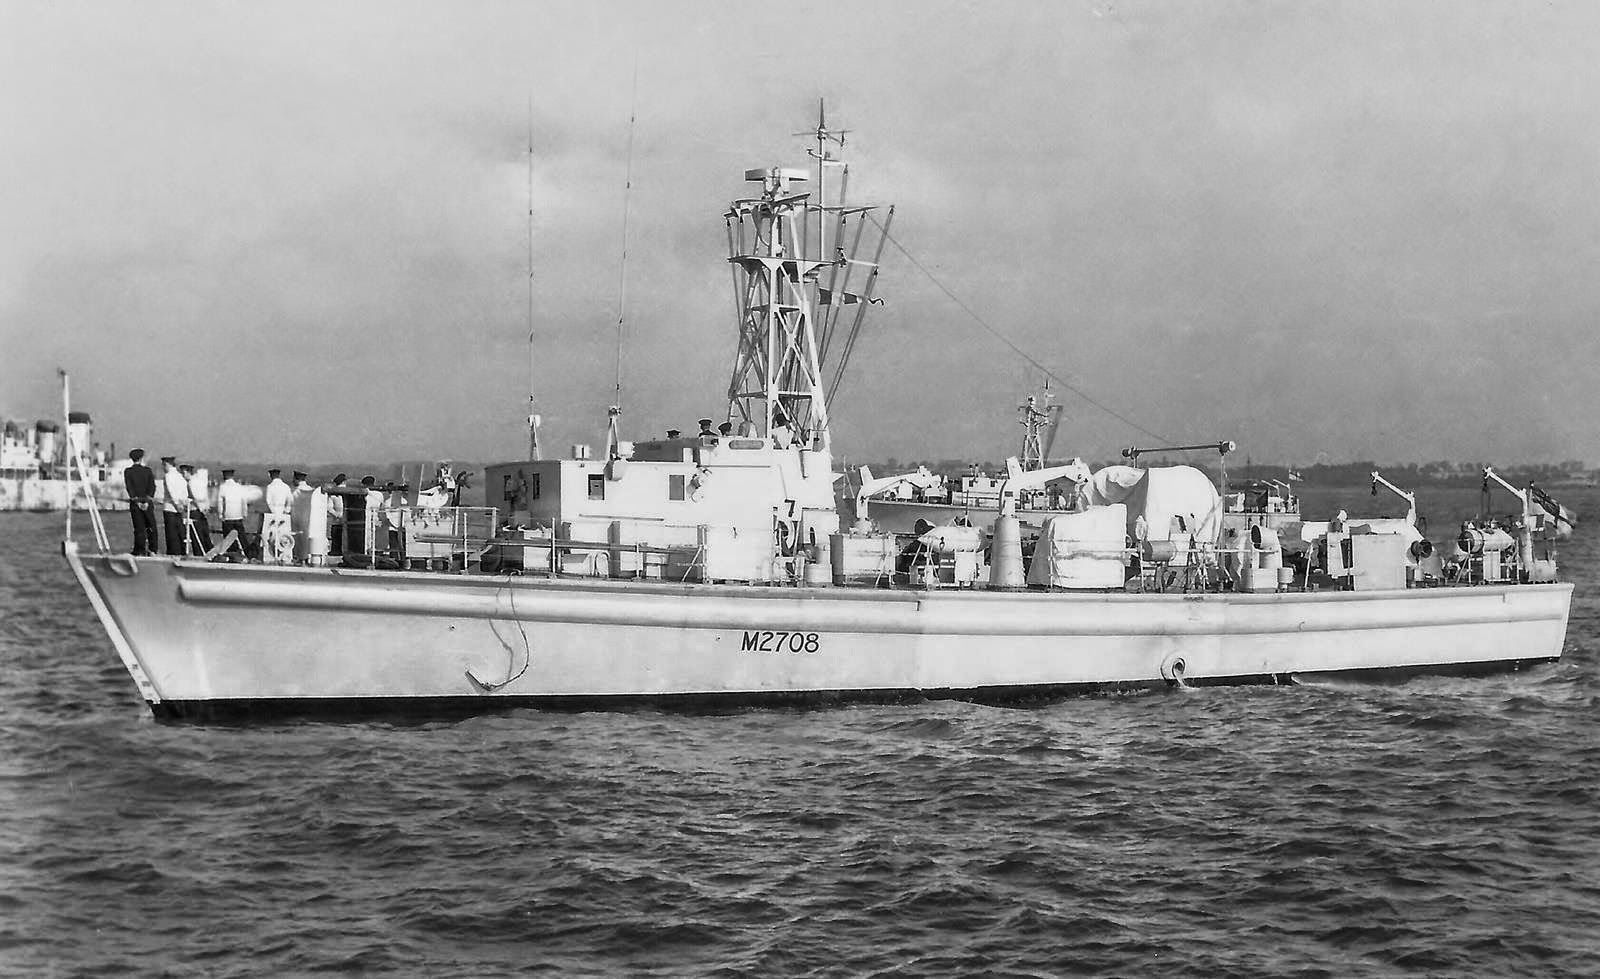 HMS Ludham(M2708) a Ham class Minesweeper an inshore minesweepers (IMS), known as the Type 1, .The class was designed to operate in the shallow water of rivers and estuaries. The parent firm responsible for supervising construction was Samuel White of Cowes, Isle of Wight. Unlike traditional minesweepers, they were not equipped for sweeping moored or magnetic mines. Their work was to locate individual mines and neutralise them. The class consisted of 93 ships, launched between '54 & '59